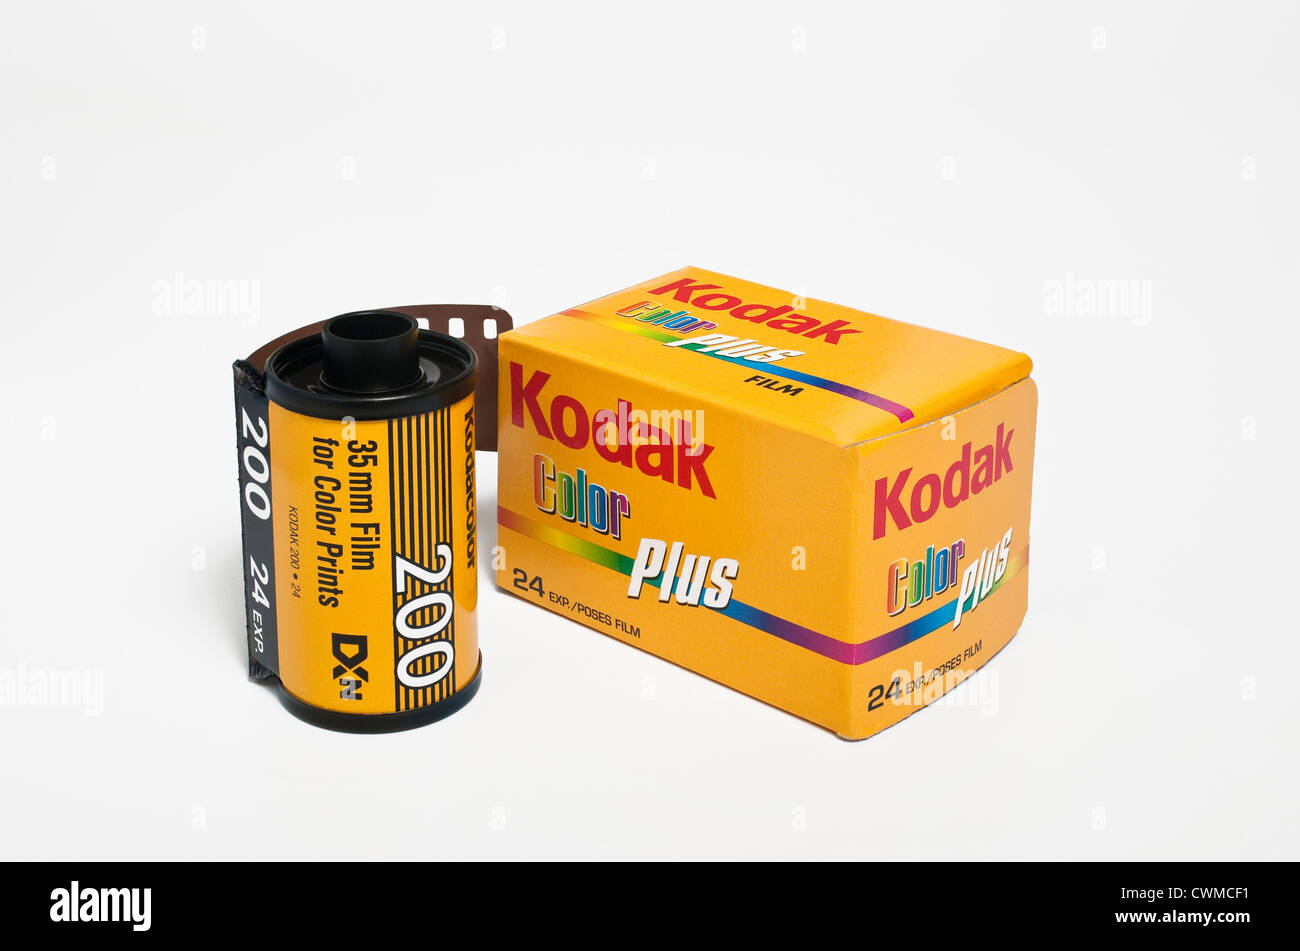 a roll of 35mm kodak color film with its box packaging